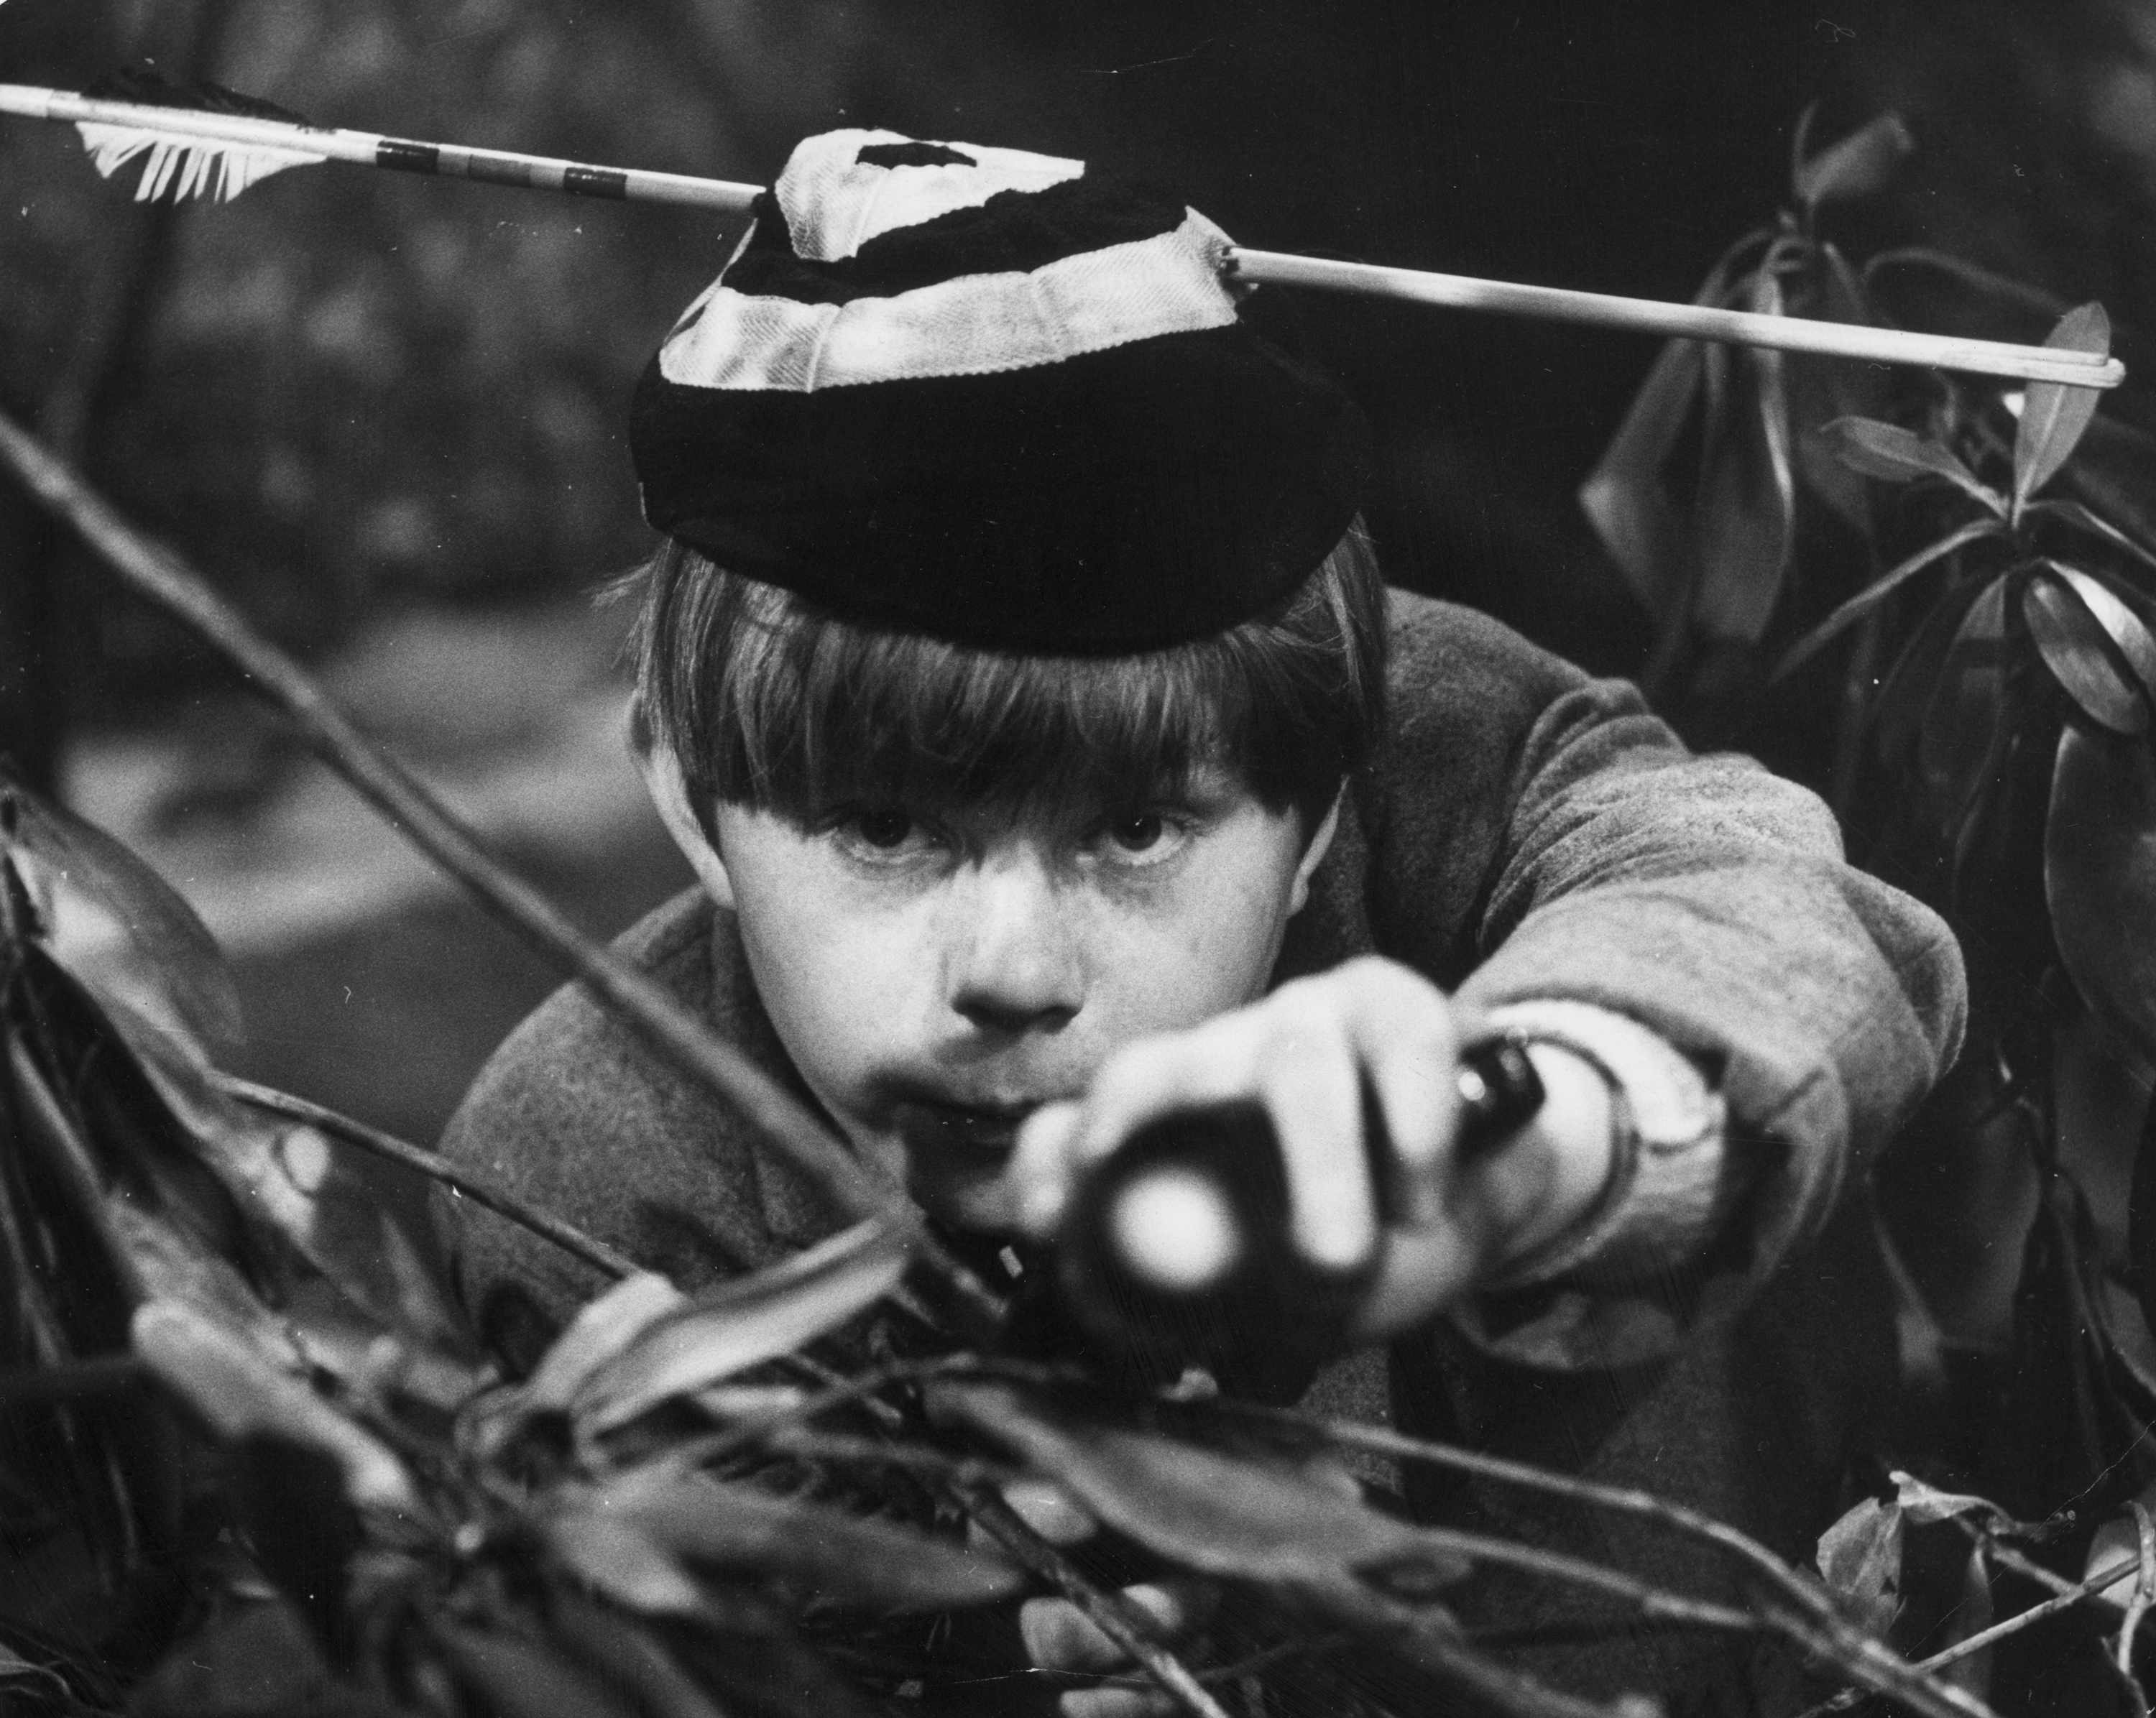 Boy peering through plant